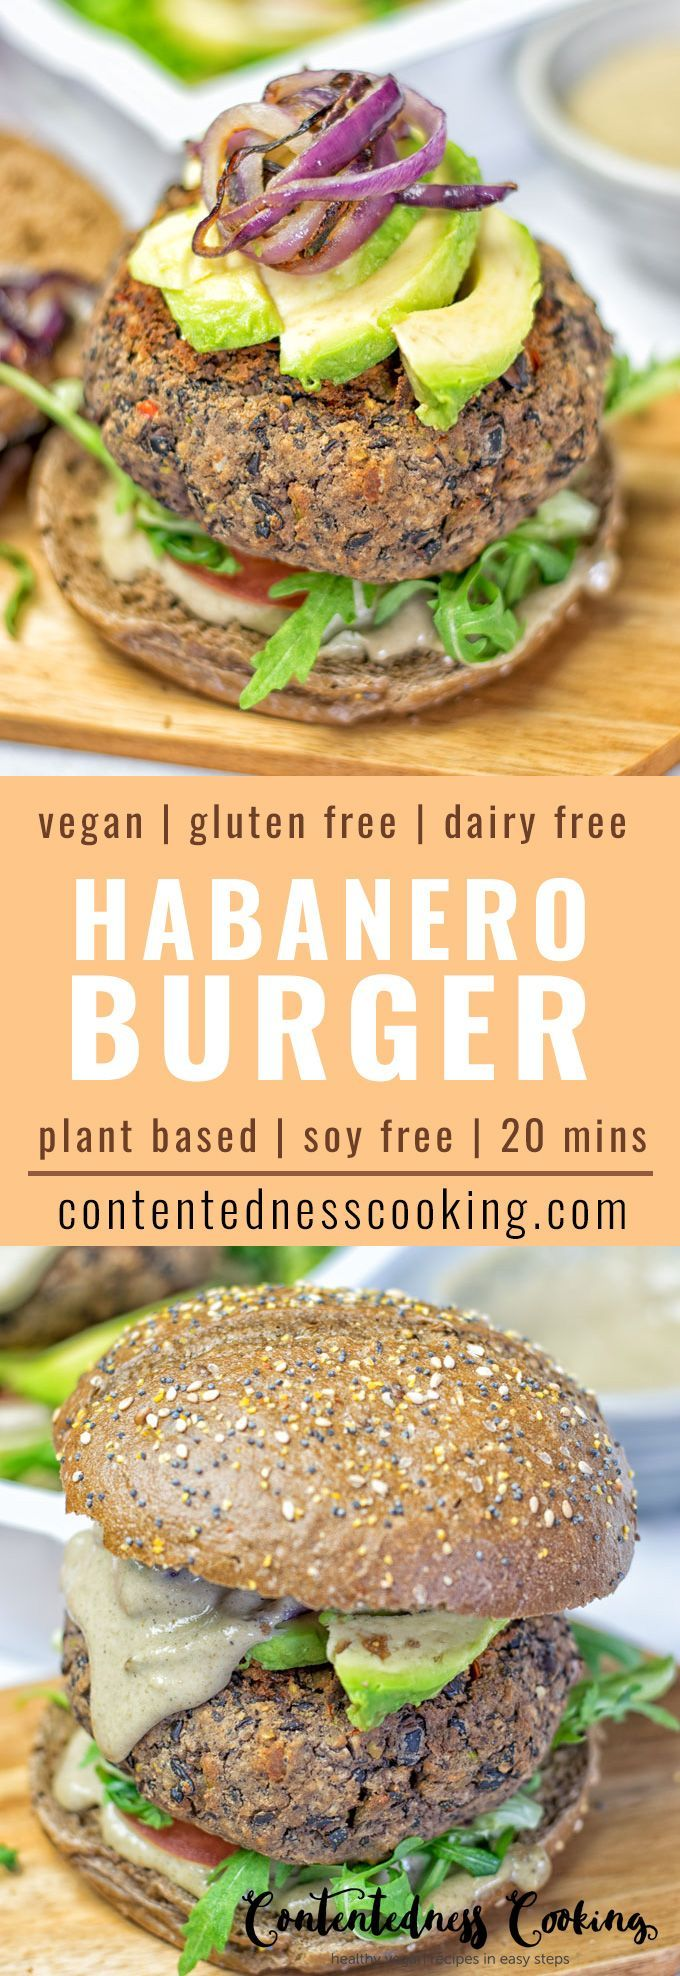 Make this Vegan Mexican Cheese Black Bean Burger infused with amazing Habanero for fiery spiciness. 5-ingredients, a must-make. Soy free, gluten free, dairy free, plant based, and ready in only 20 minutes.